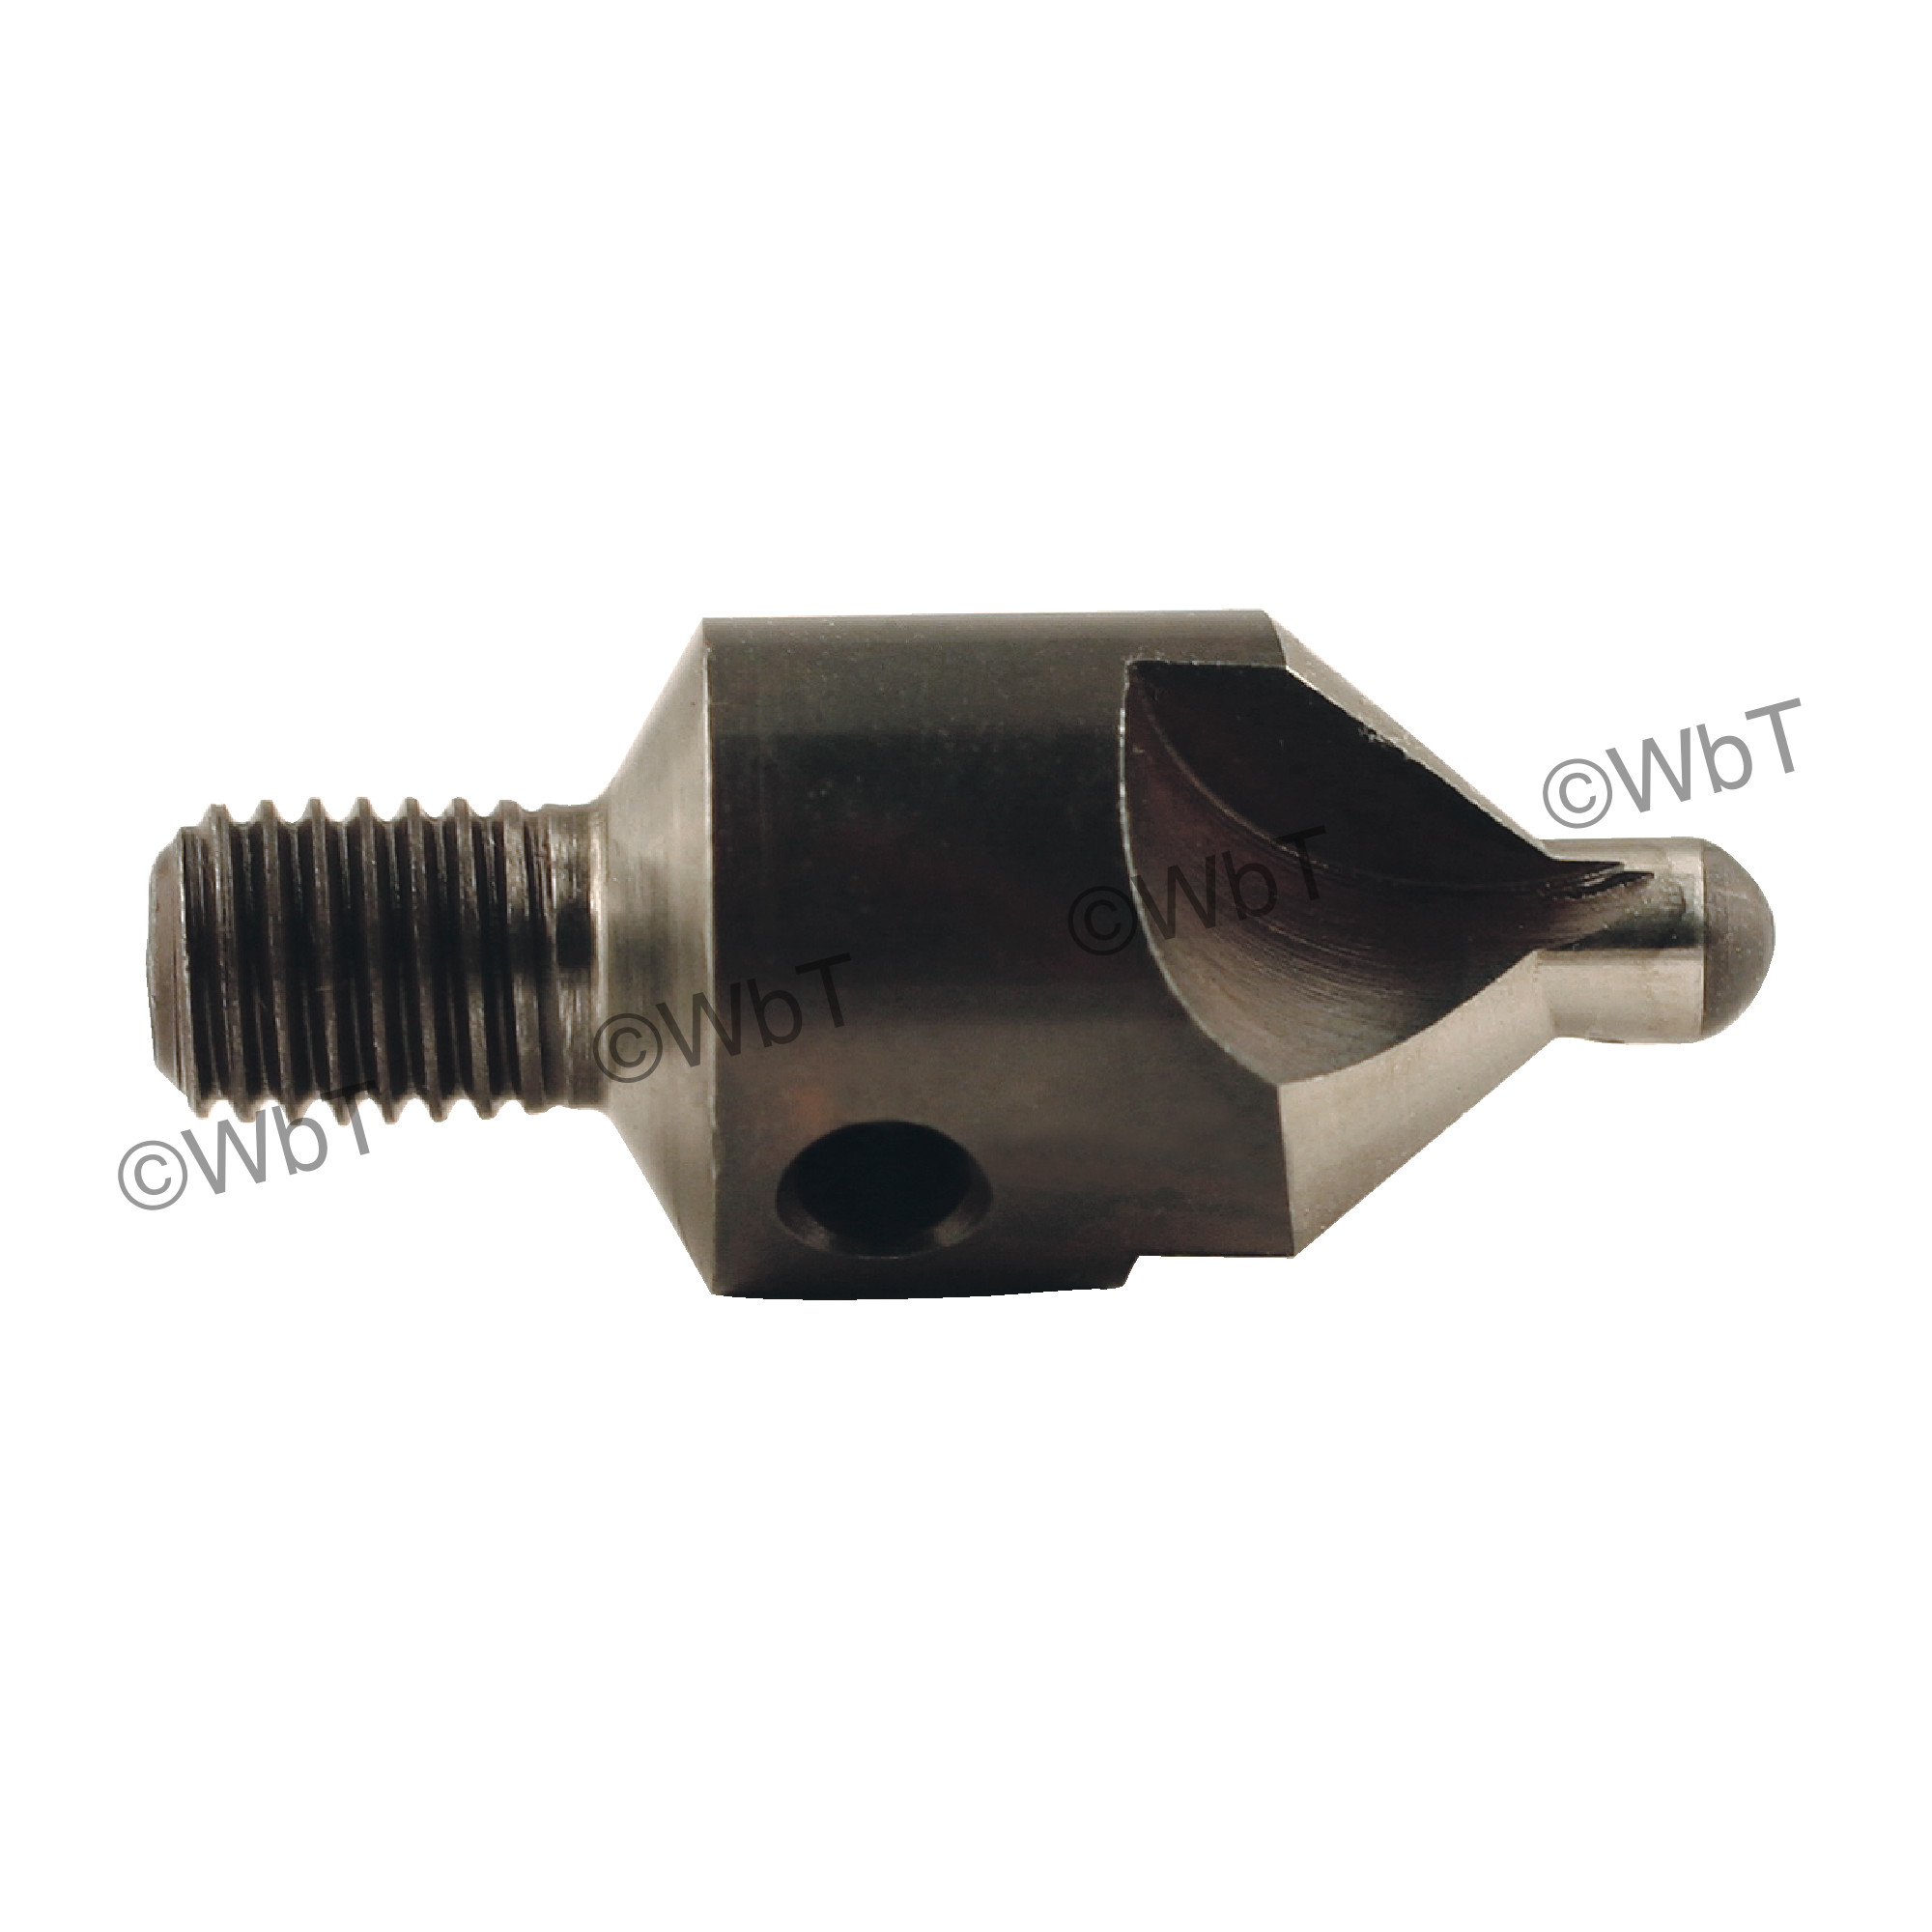 Threaded Shank 3 Flute Micro Stop Countersink